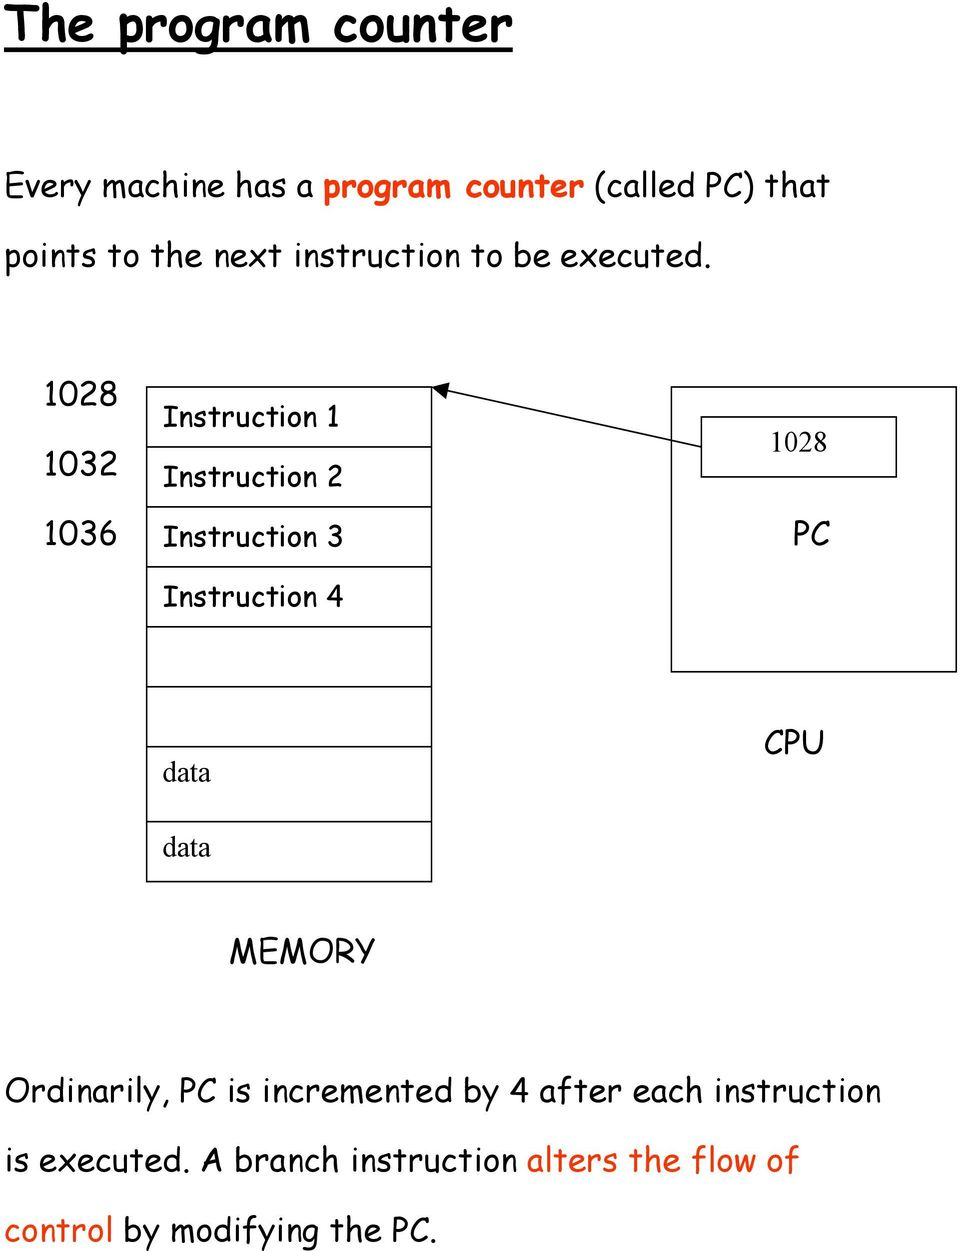 1028 Instruction 1 1032 Instruction 2 1028 1036 Instruction 3 PC Instruction 4 data CPU